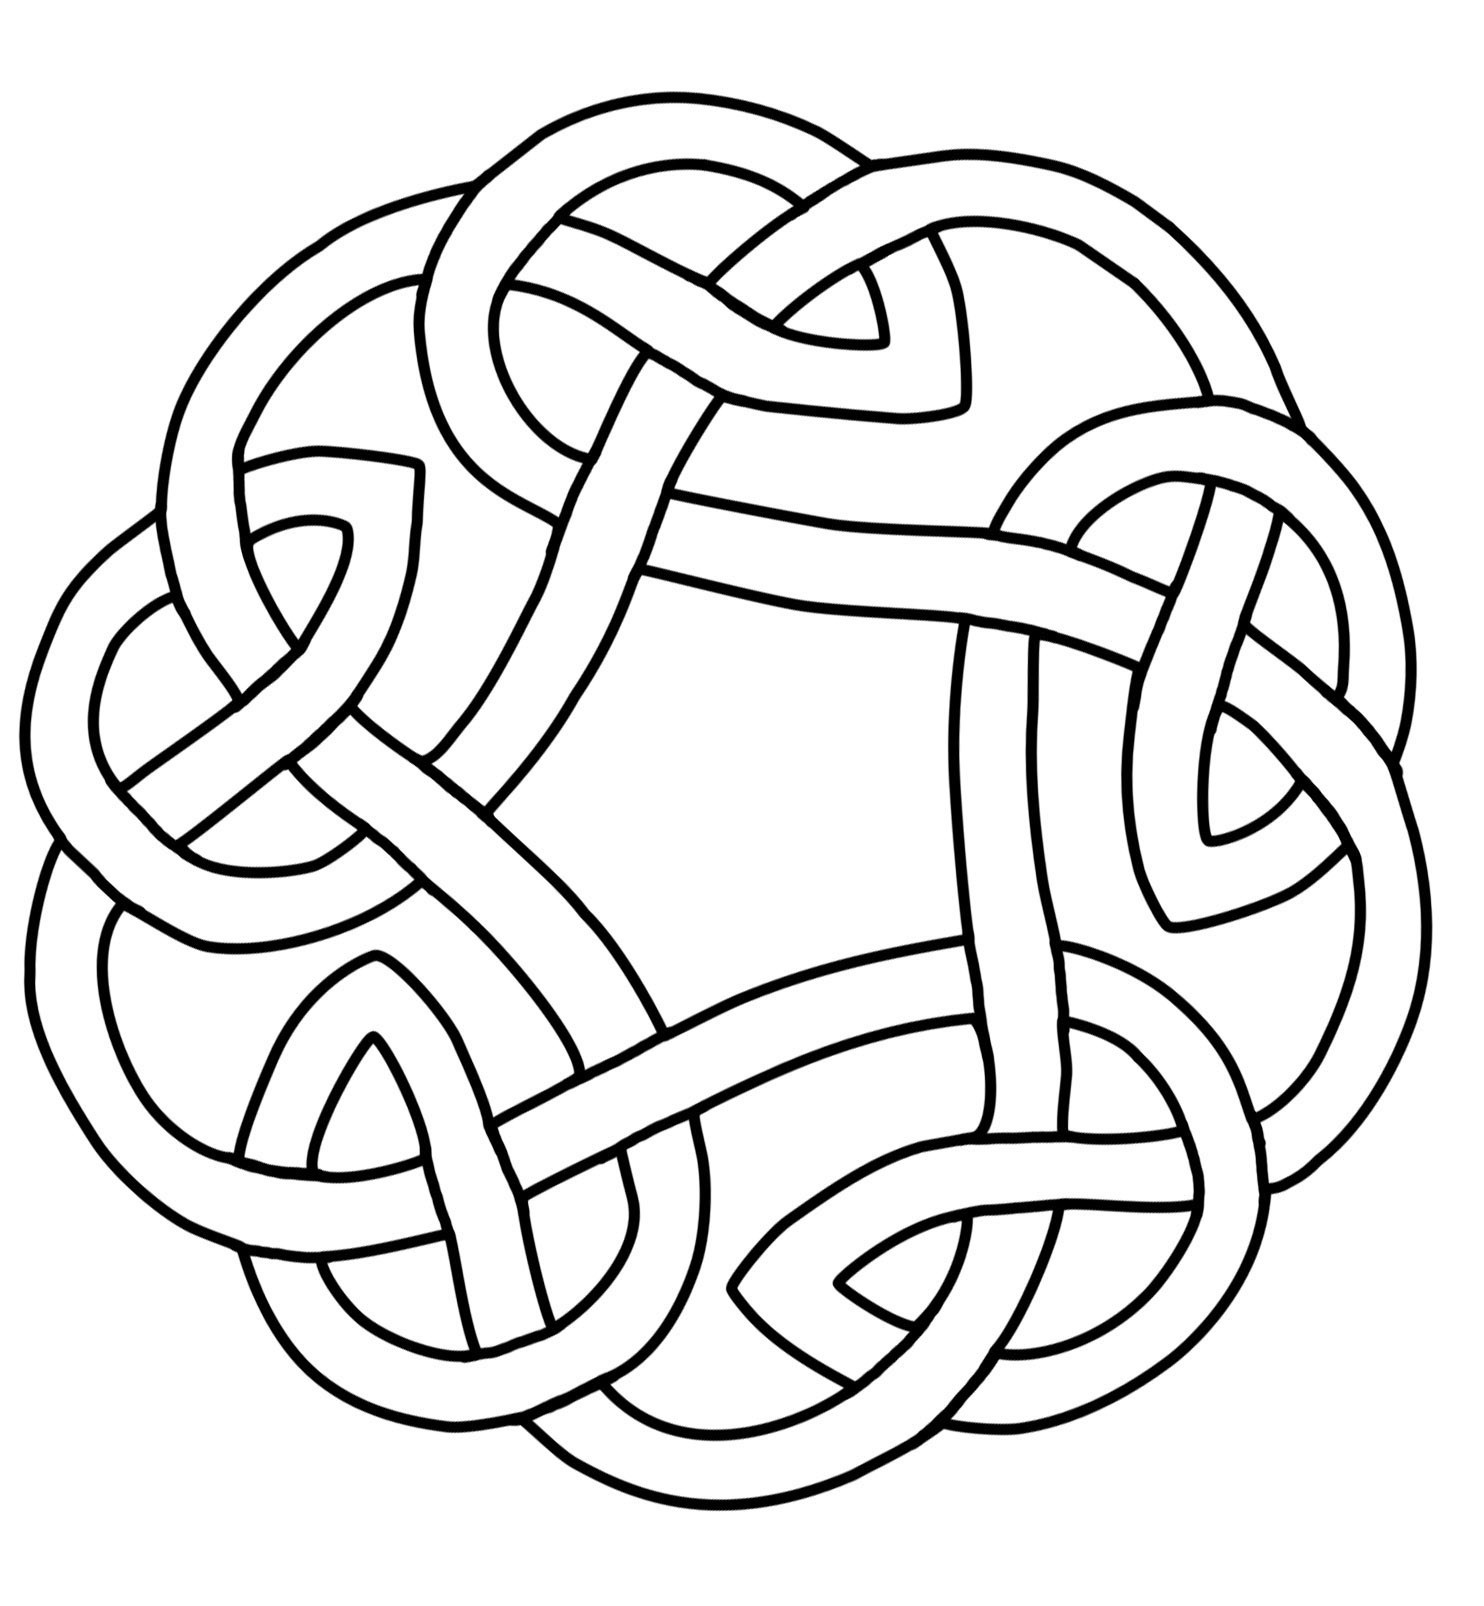 Celt clipart circle Celtic Circle ClipArt Circle Best